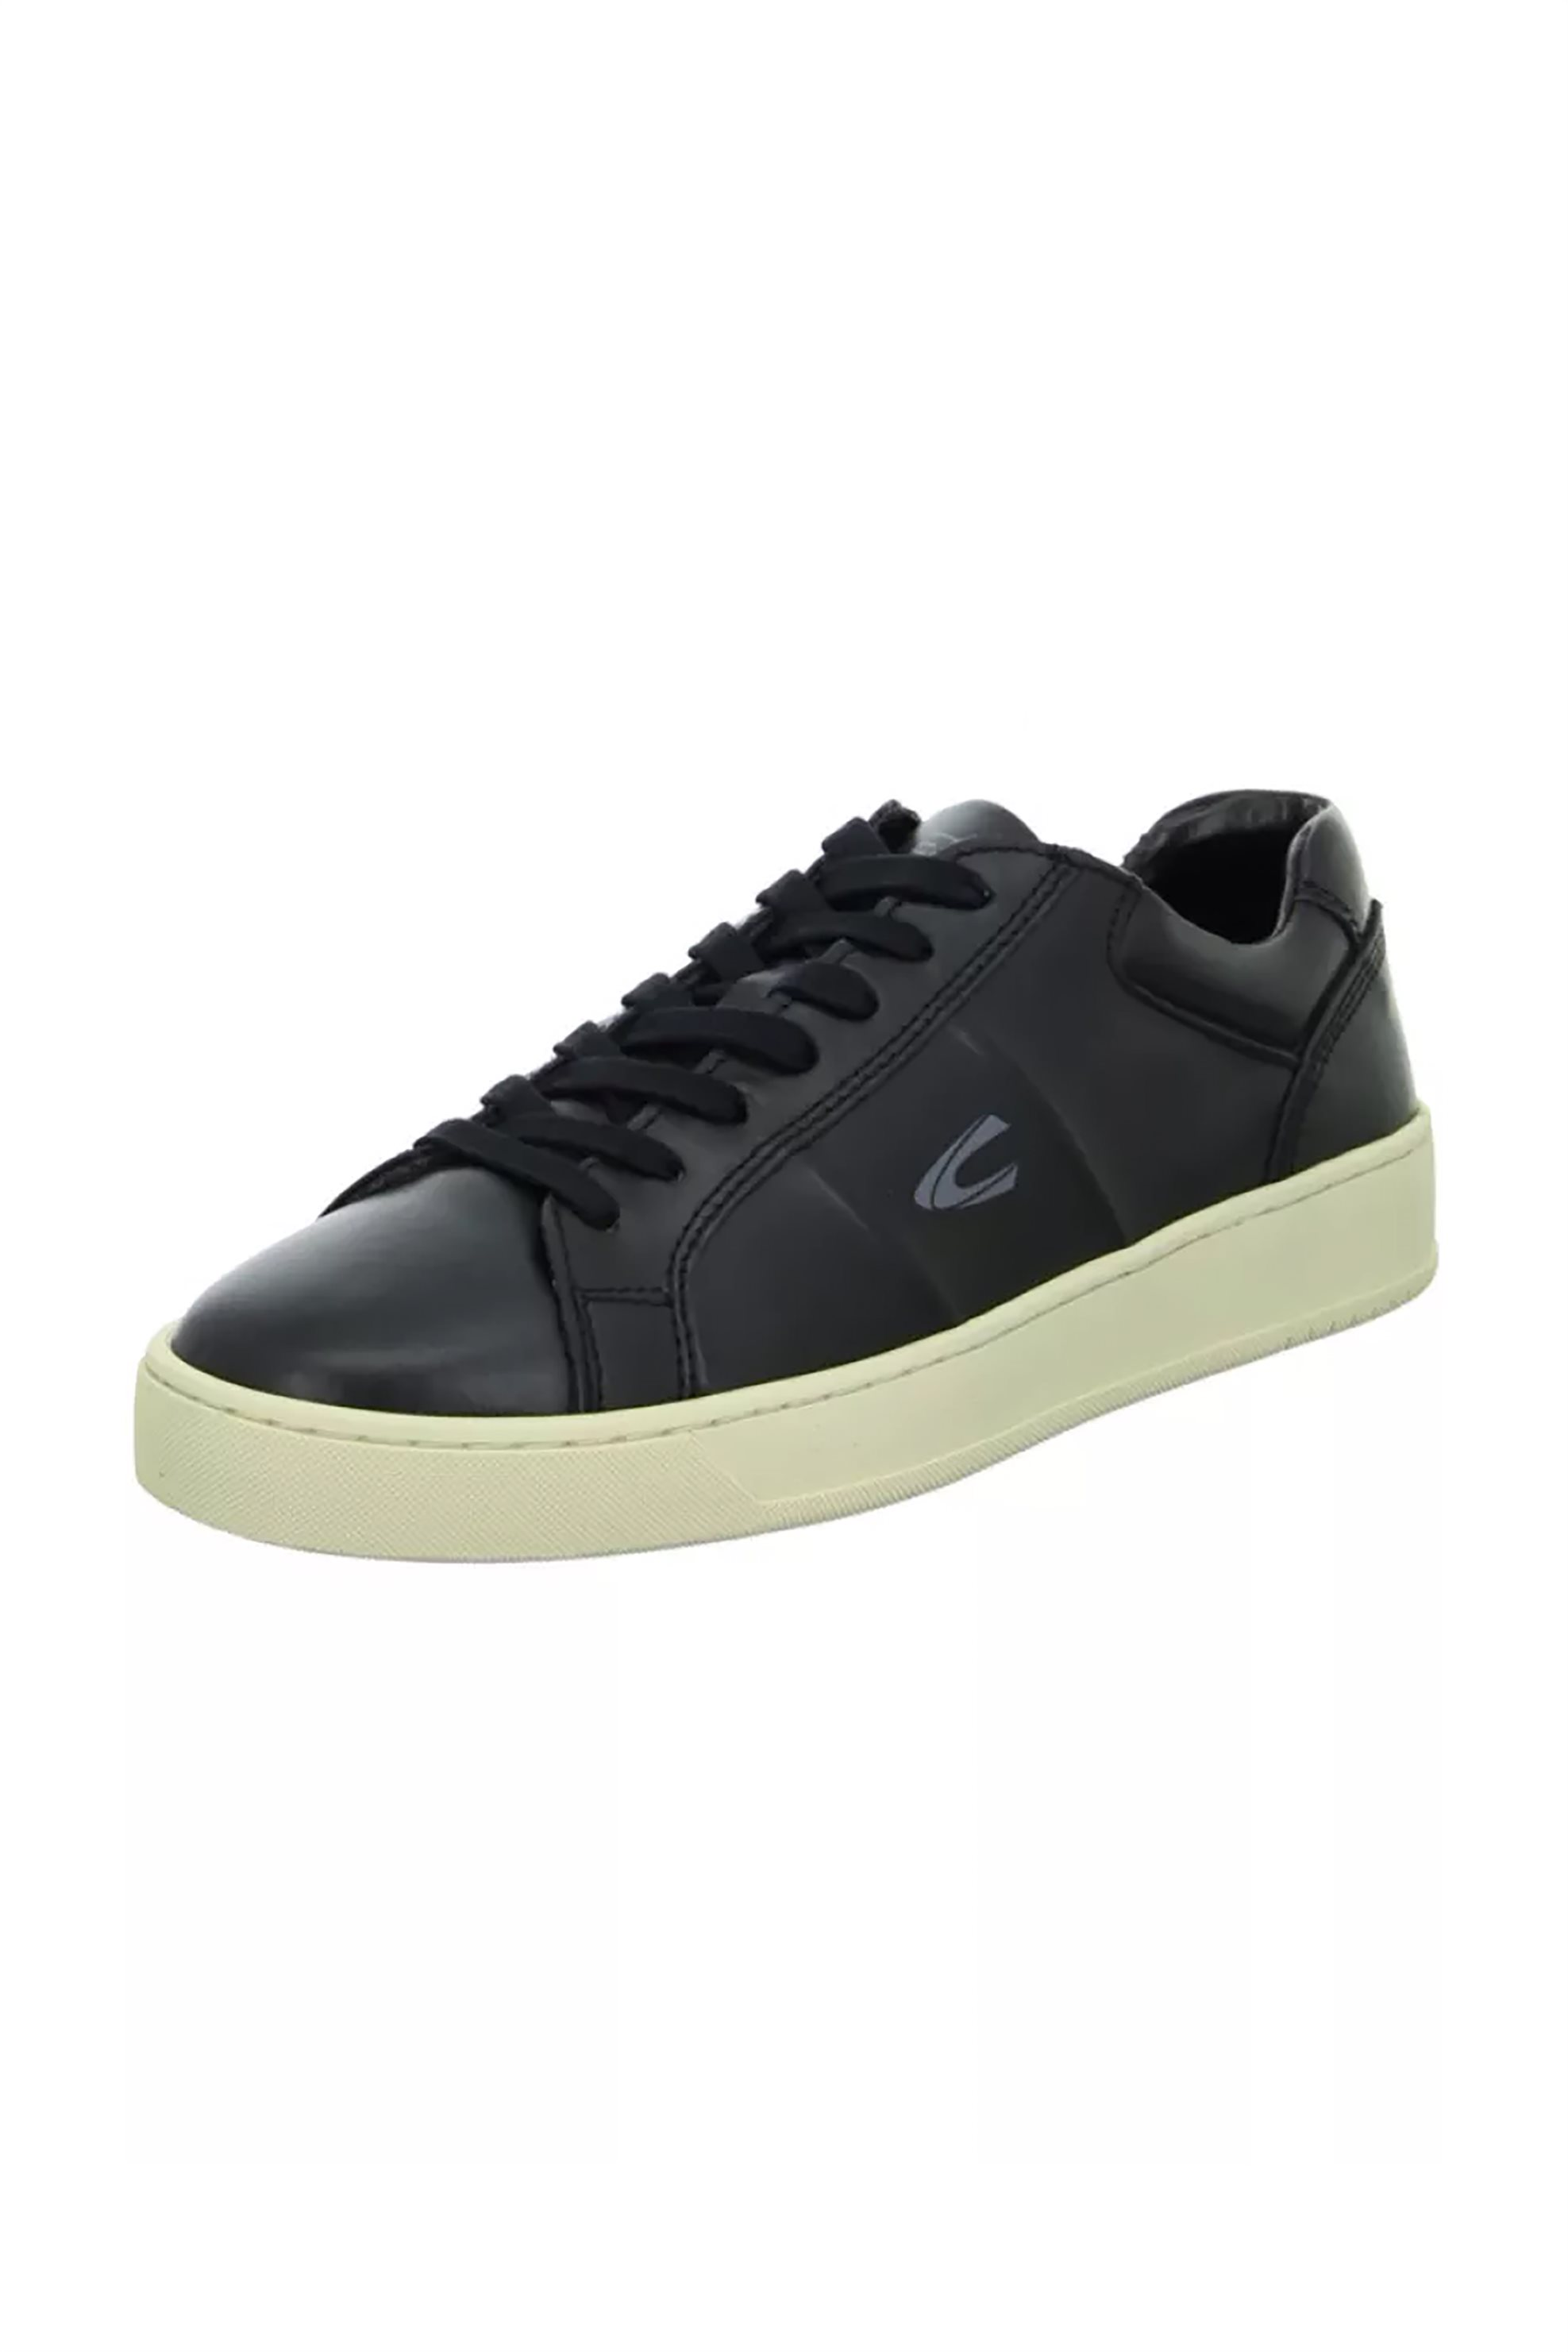 """Camel Active ανδρικά δερμάτινα sneakers με logo """"Cloud Low Lace"""" – CH-91-231249 – Μαύρο"""